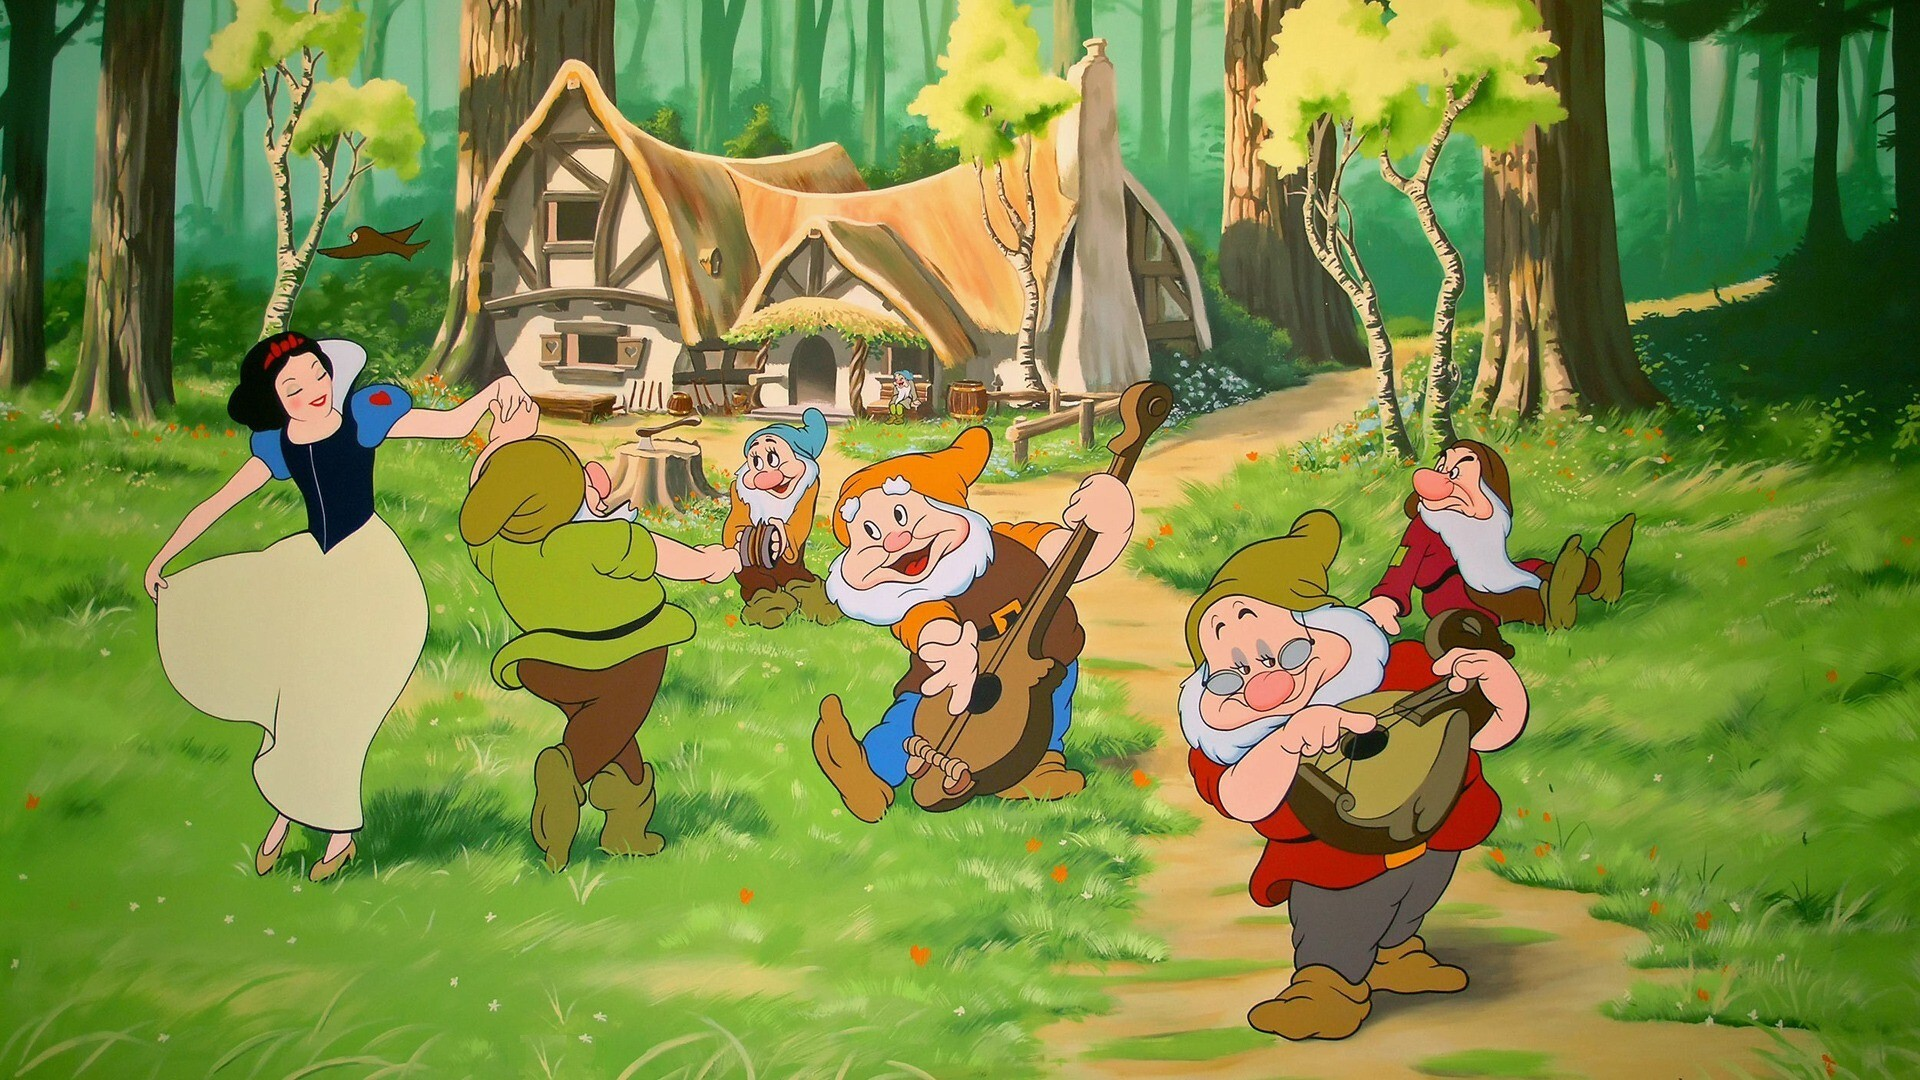 snow white and the seven dwarfs hd image hd wallpapers